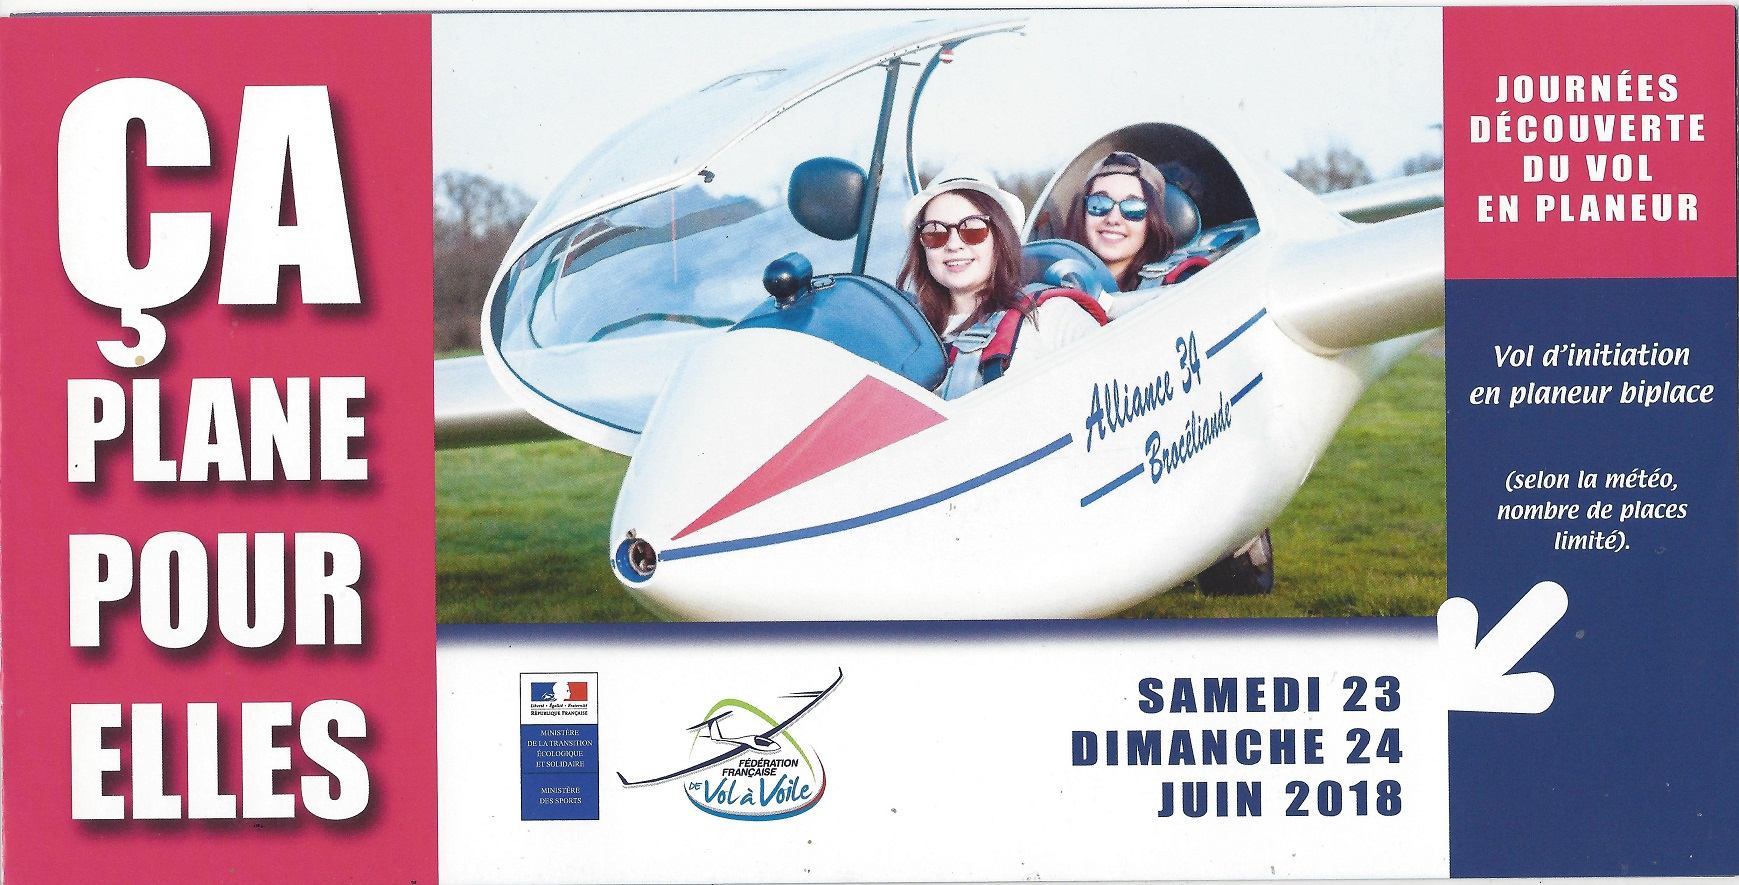 Ca plane pour elles / Gliding for girls